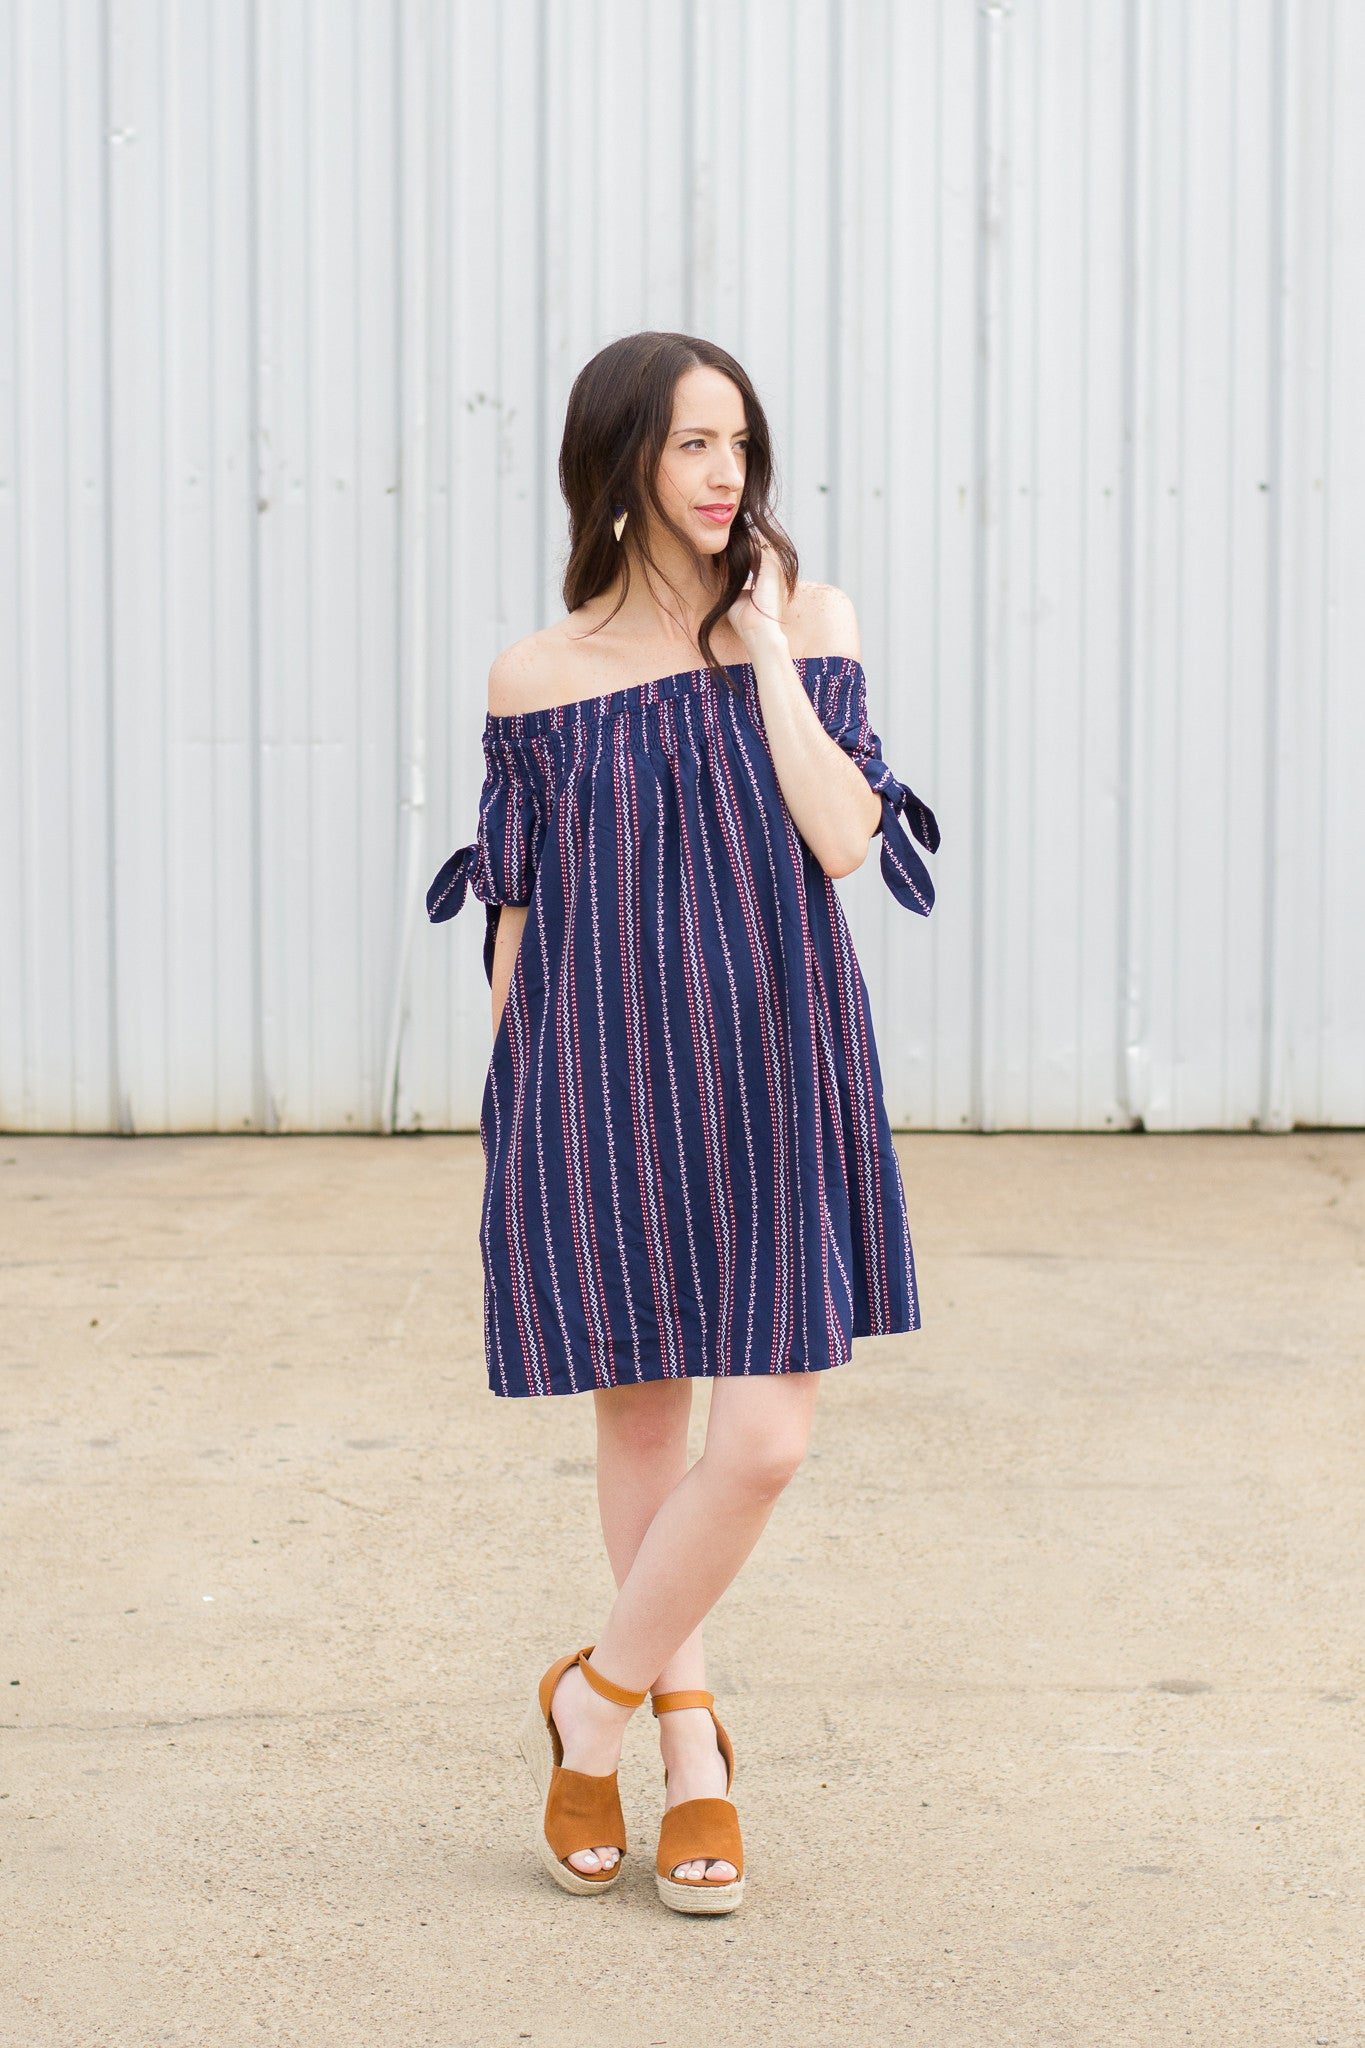 Navy OTS Dress paired with Cognac Espradilles Wedges